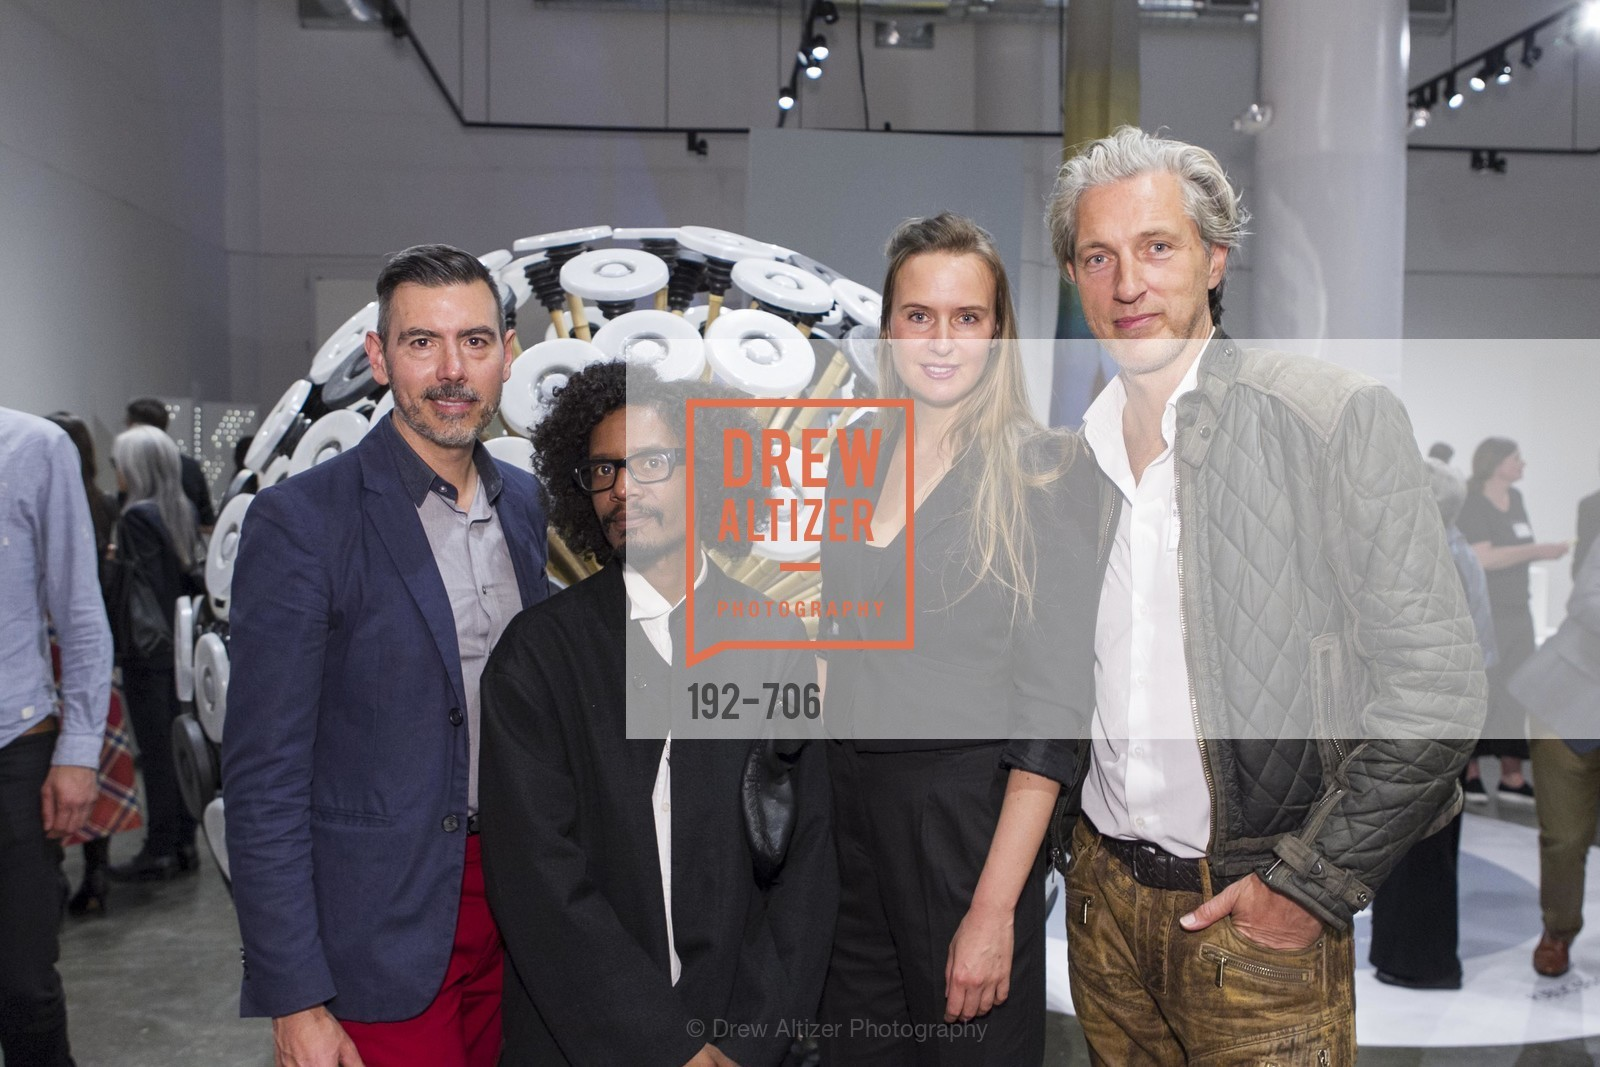 John Macy, Yani Alexi Dominguez, Lonneke Gordijn, Marcel Wanders, Exhibit Opening at the MUSEUM OF CRAFT AND DESIGN - Hands Off: New Dutch Design at the Confluence of Technology & Craft, US, May 7th, 2015,Drew Altizer, Drew Altizer Photography, full-service agency, private events, San Francisco photographer, photographer california